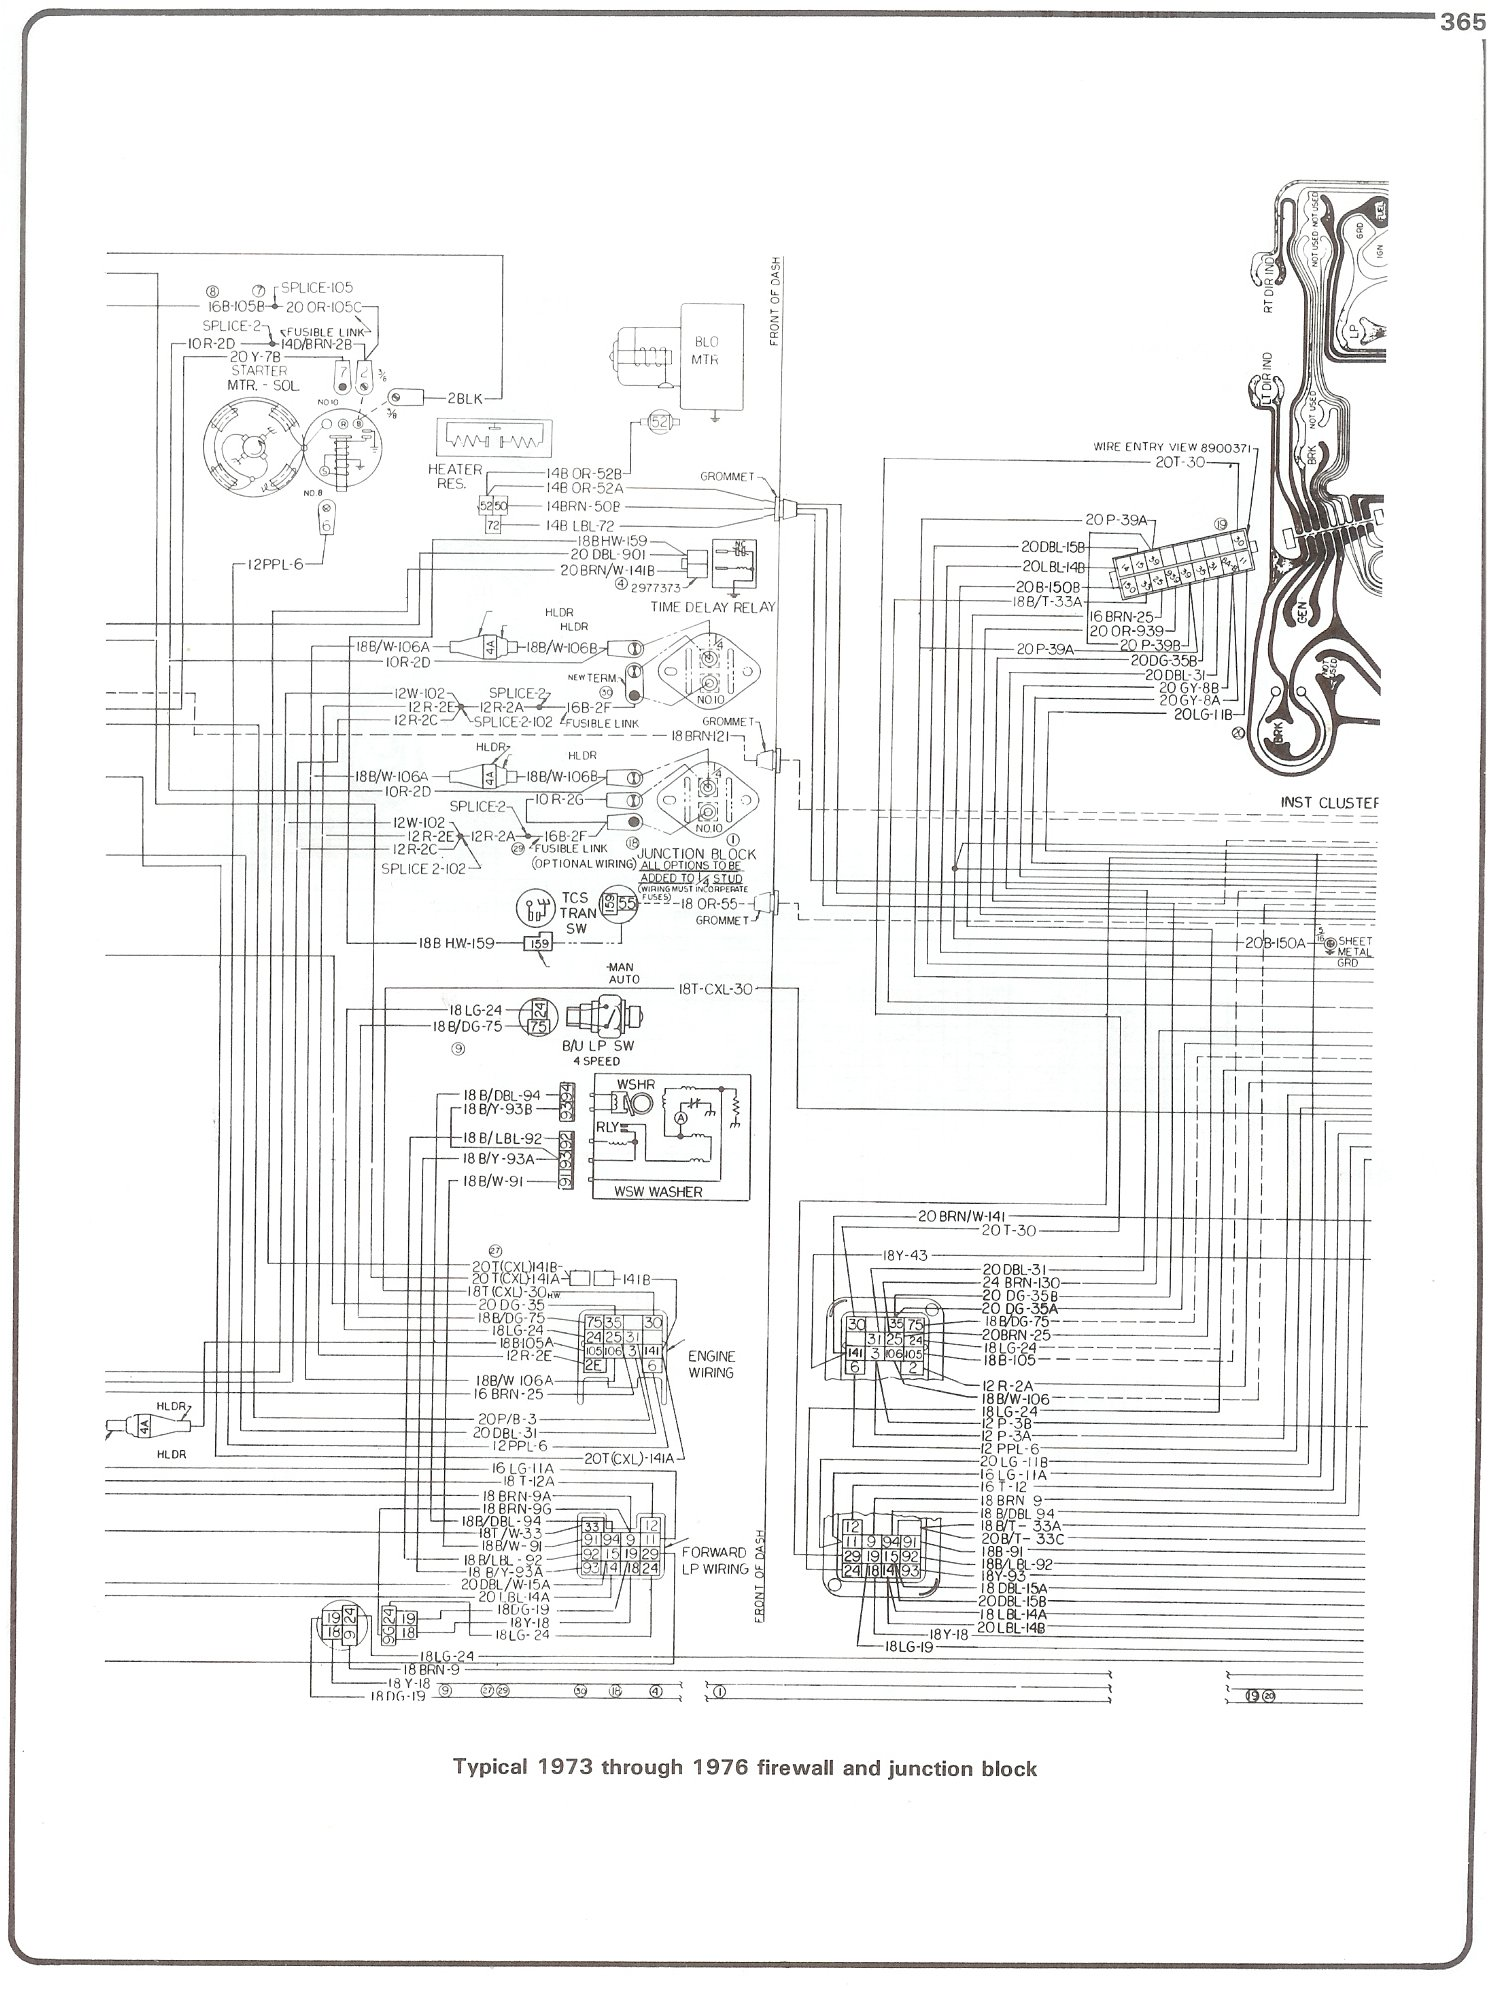 Firewall Junct on Chevy Impala Wire Schematics Trusted Wiring Diagram